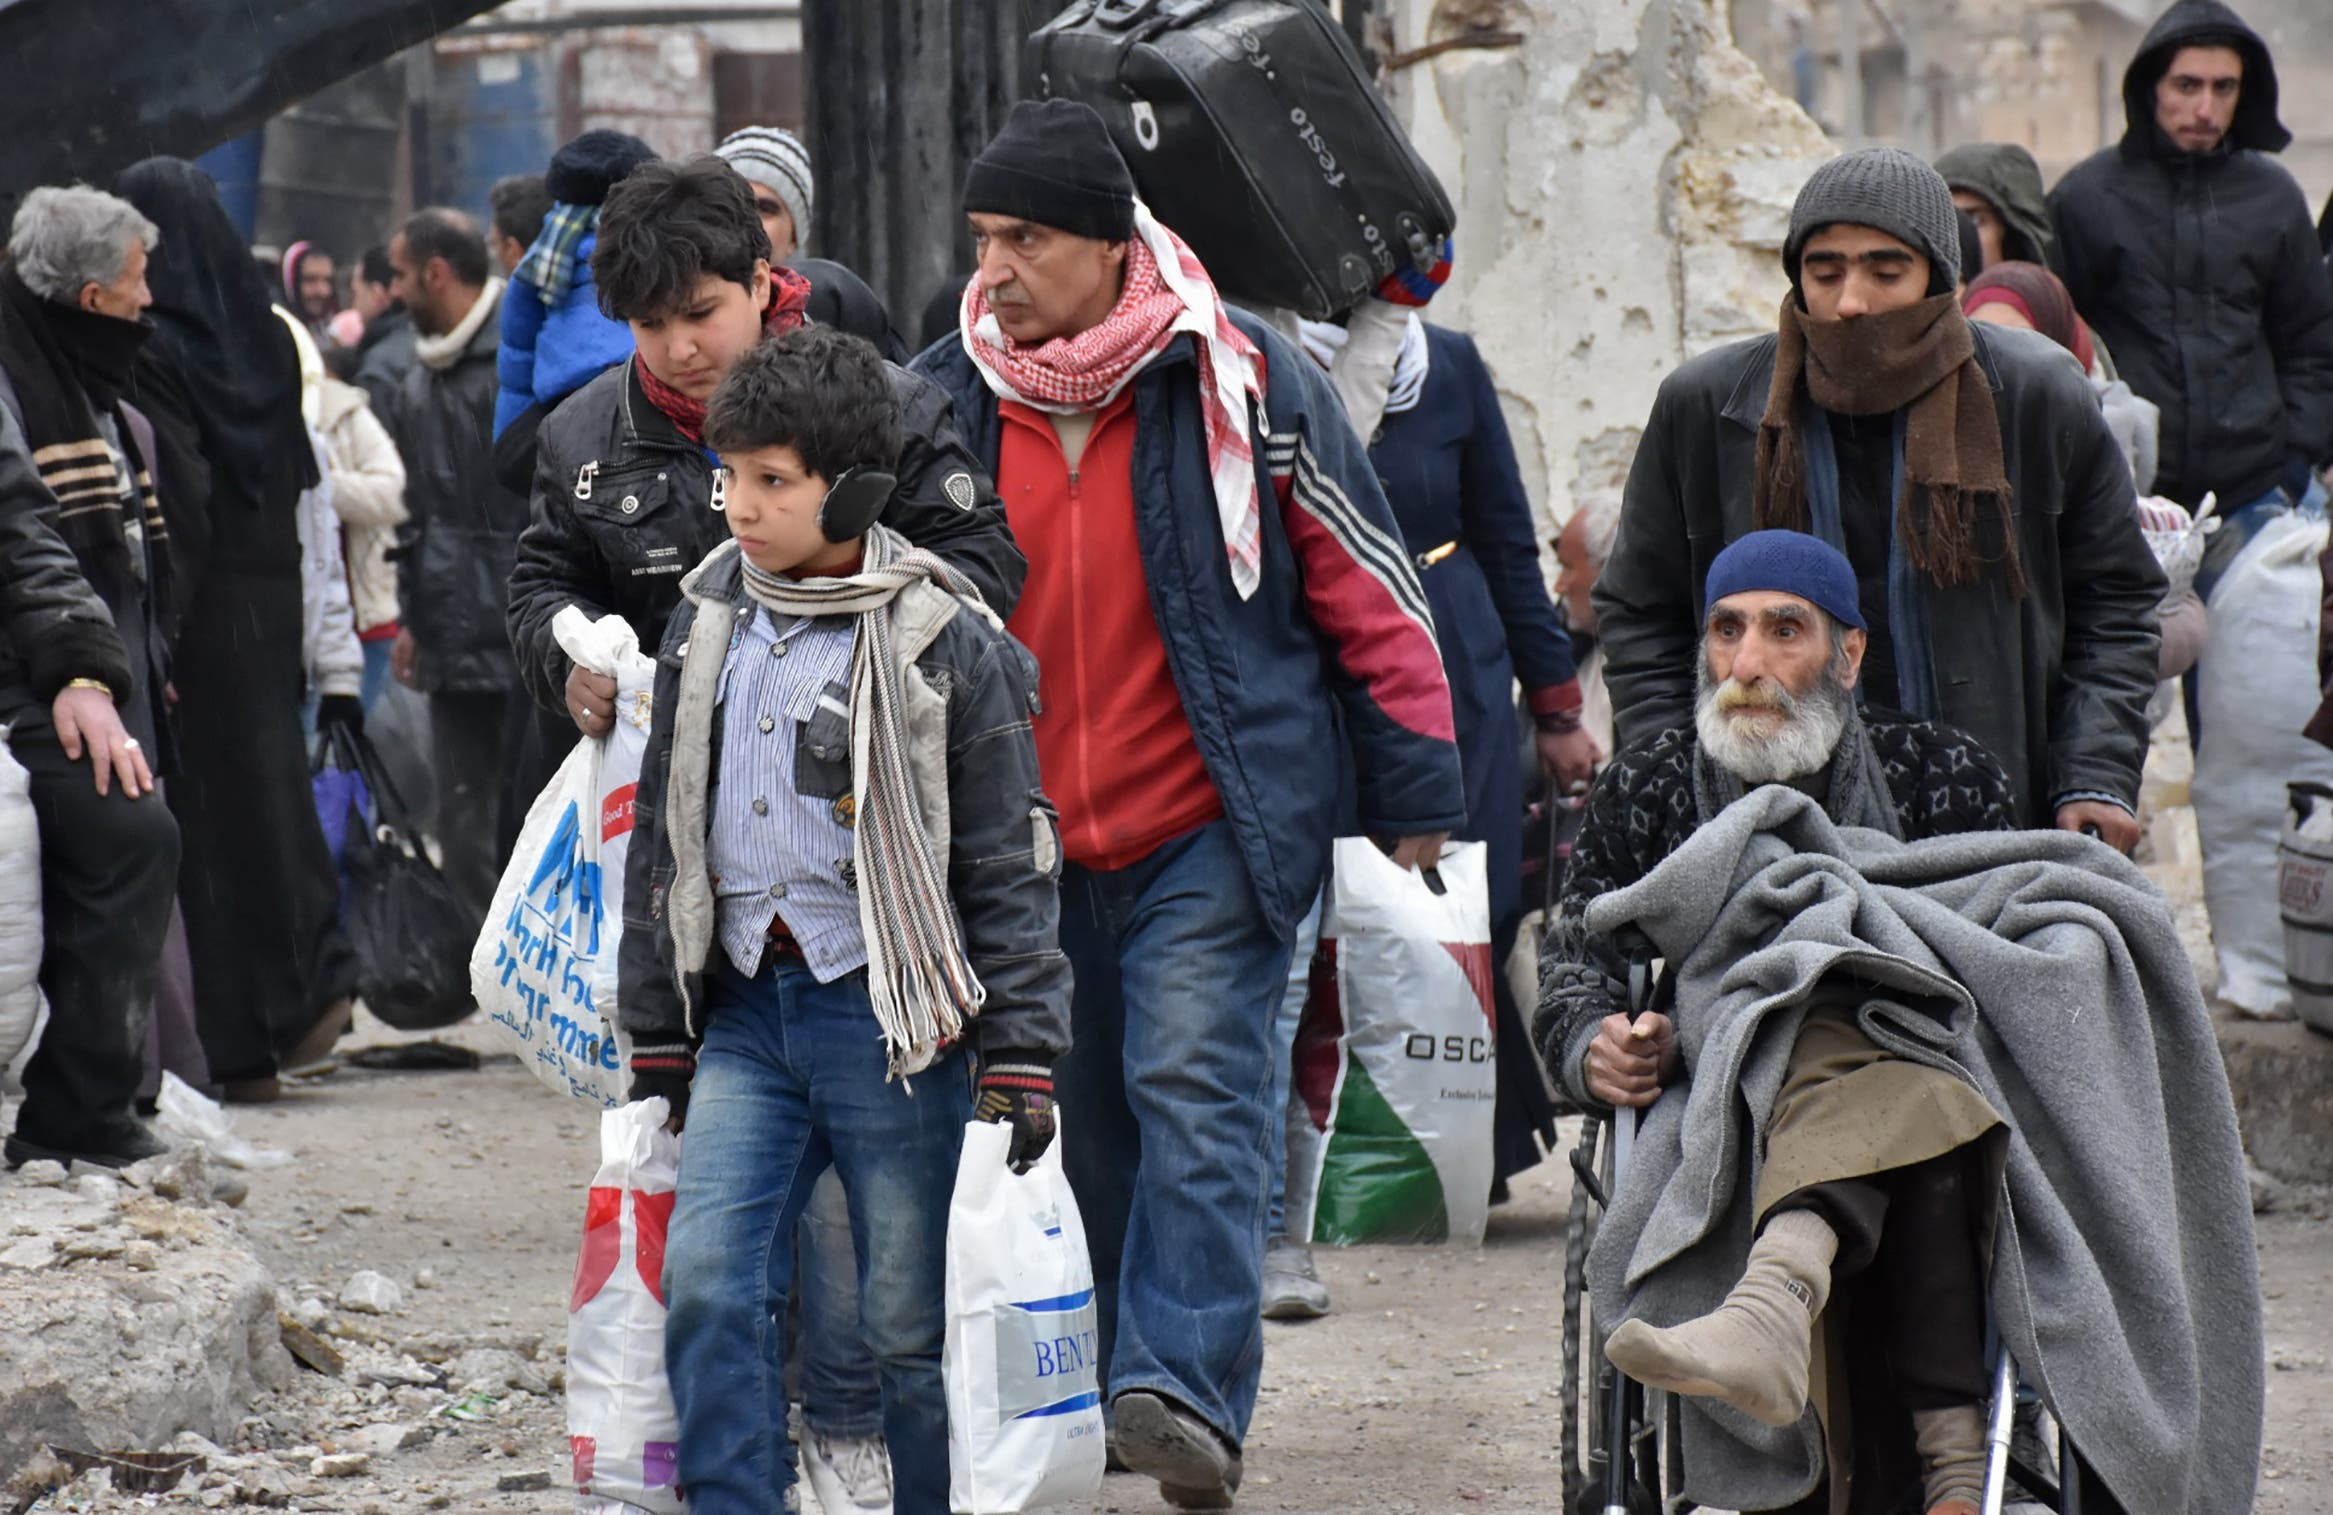 Syrian residents fleeing the eastern part of Aleppo gather in Masaken Hanano, a former rebel-held district which was retaken by the regime forces last week, on November 30, 2016. afp